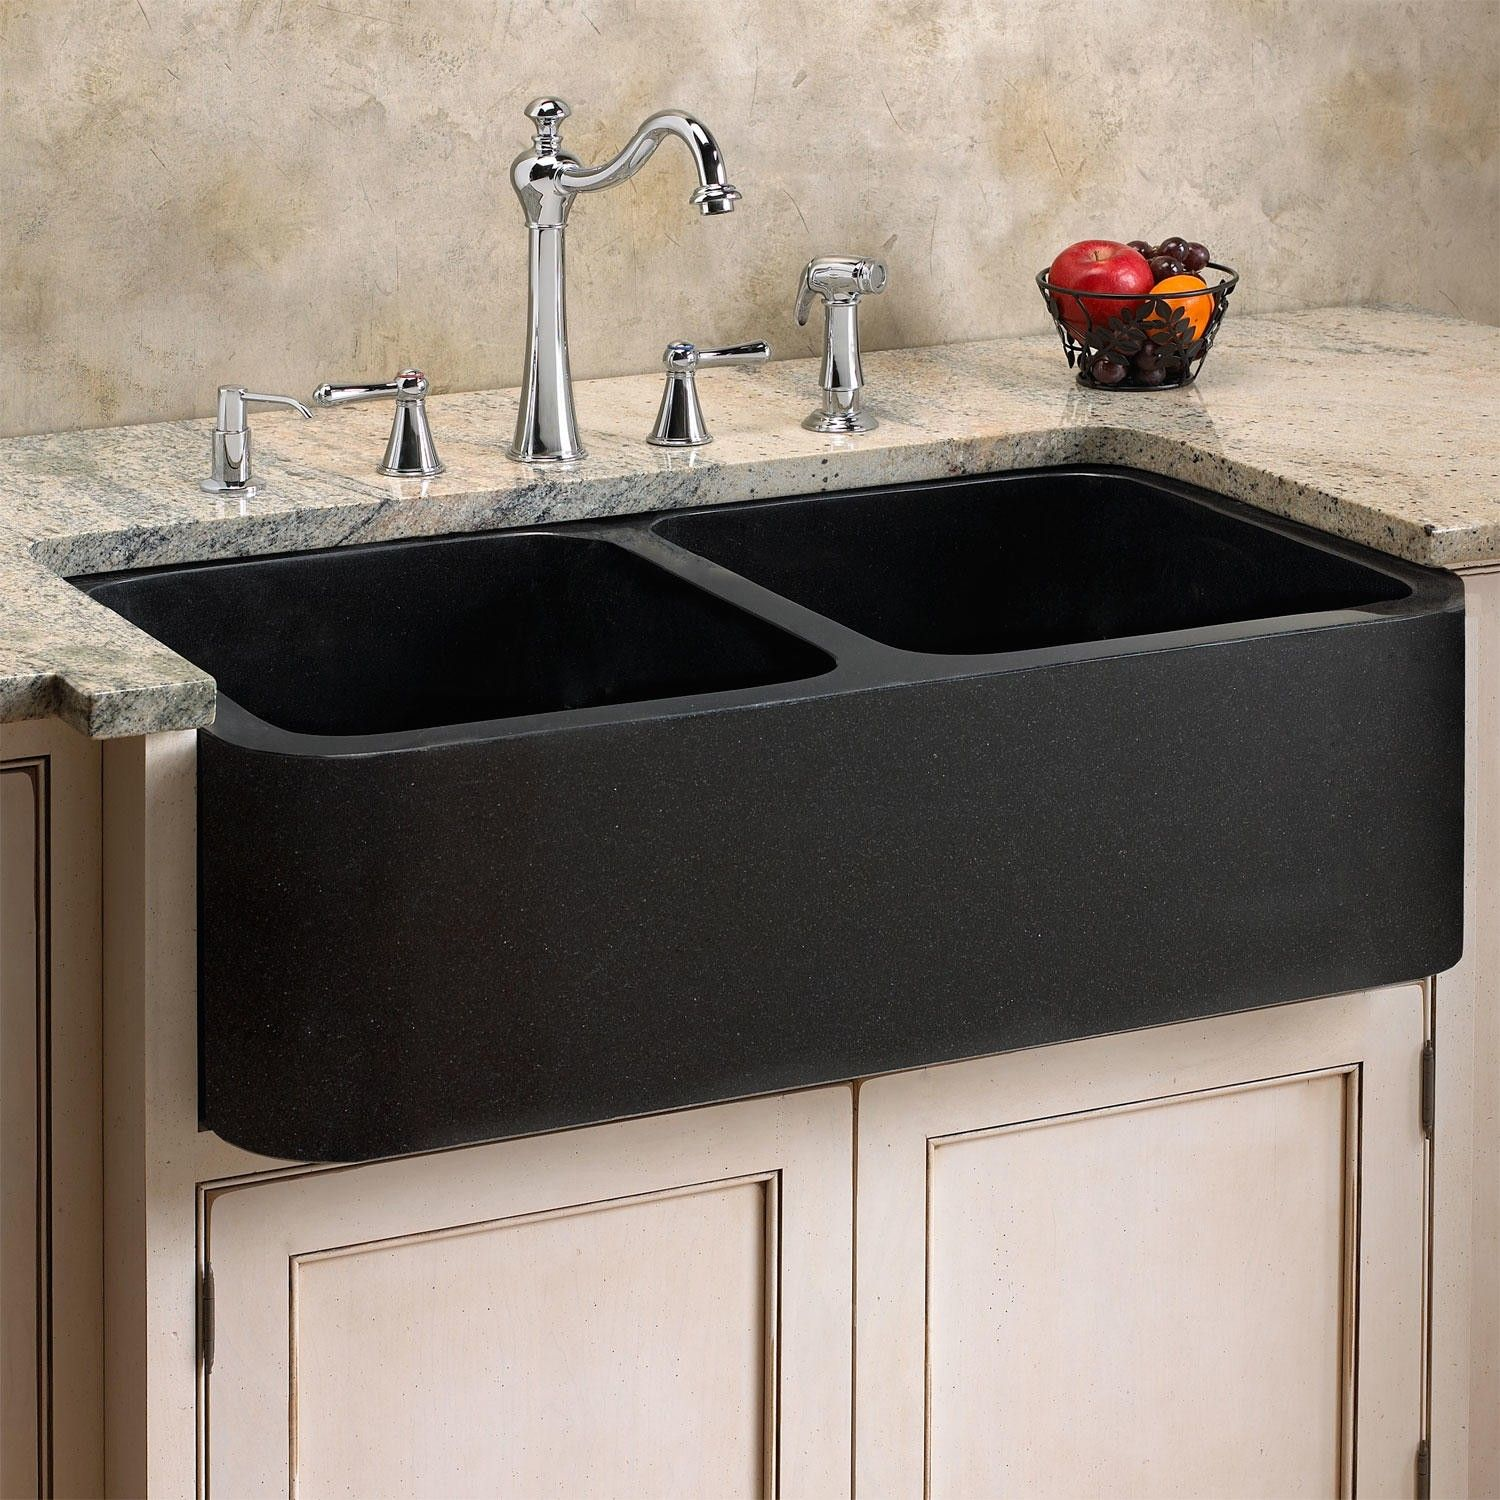 "Off White Kitchen Cabinets With Stainless Appliances: 33"" Polished Granite Double-Bowl Farmhouse Sink"